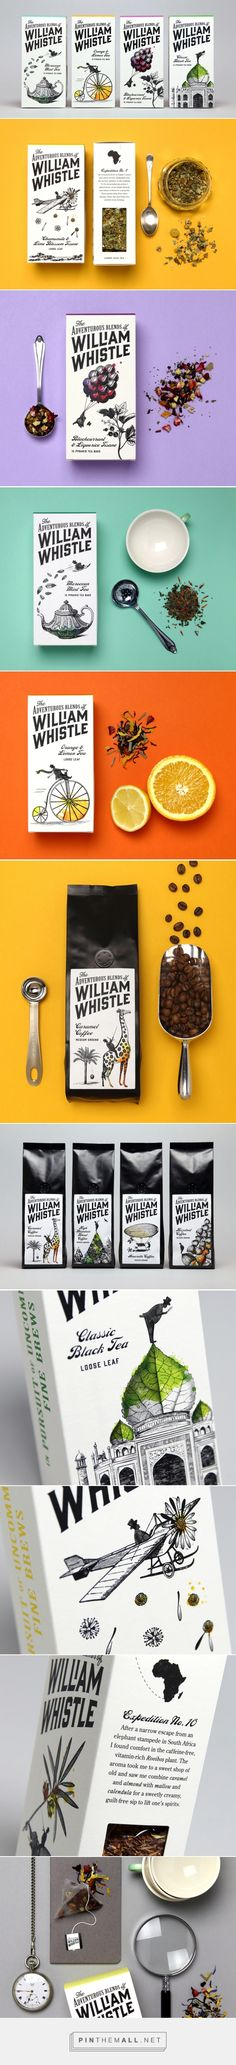 The Adventurous Blends of William Whistle — The Dieline - Branding & Packaging Design. - a grouped images picture Beverage Packaging, Coffee Packaging, Brand Packaging, Tea Design, Tea Box, Brand Design, Package Design, Chocolate Recipes, Beverages